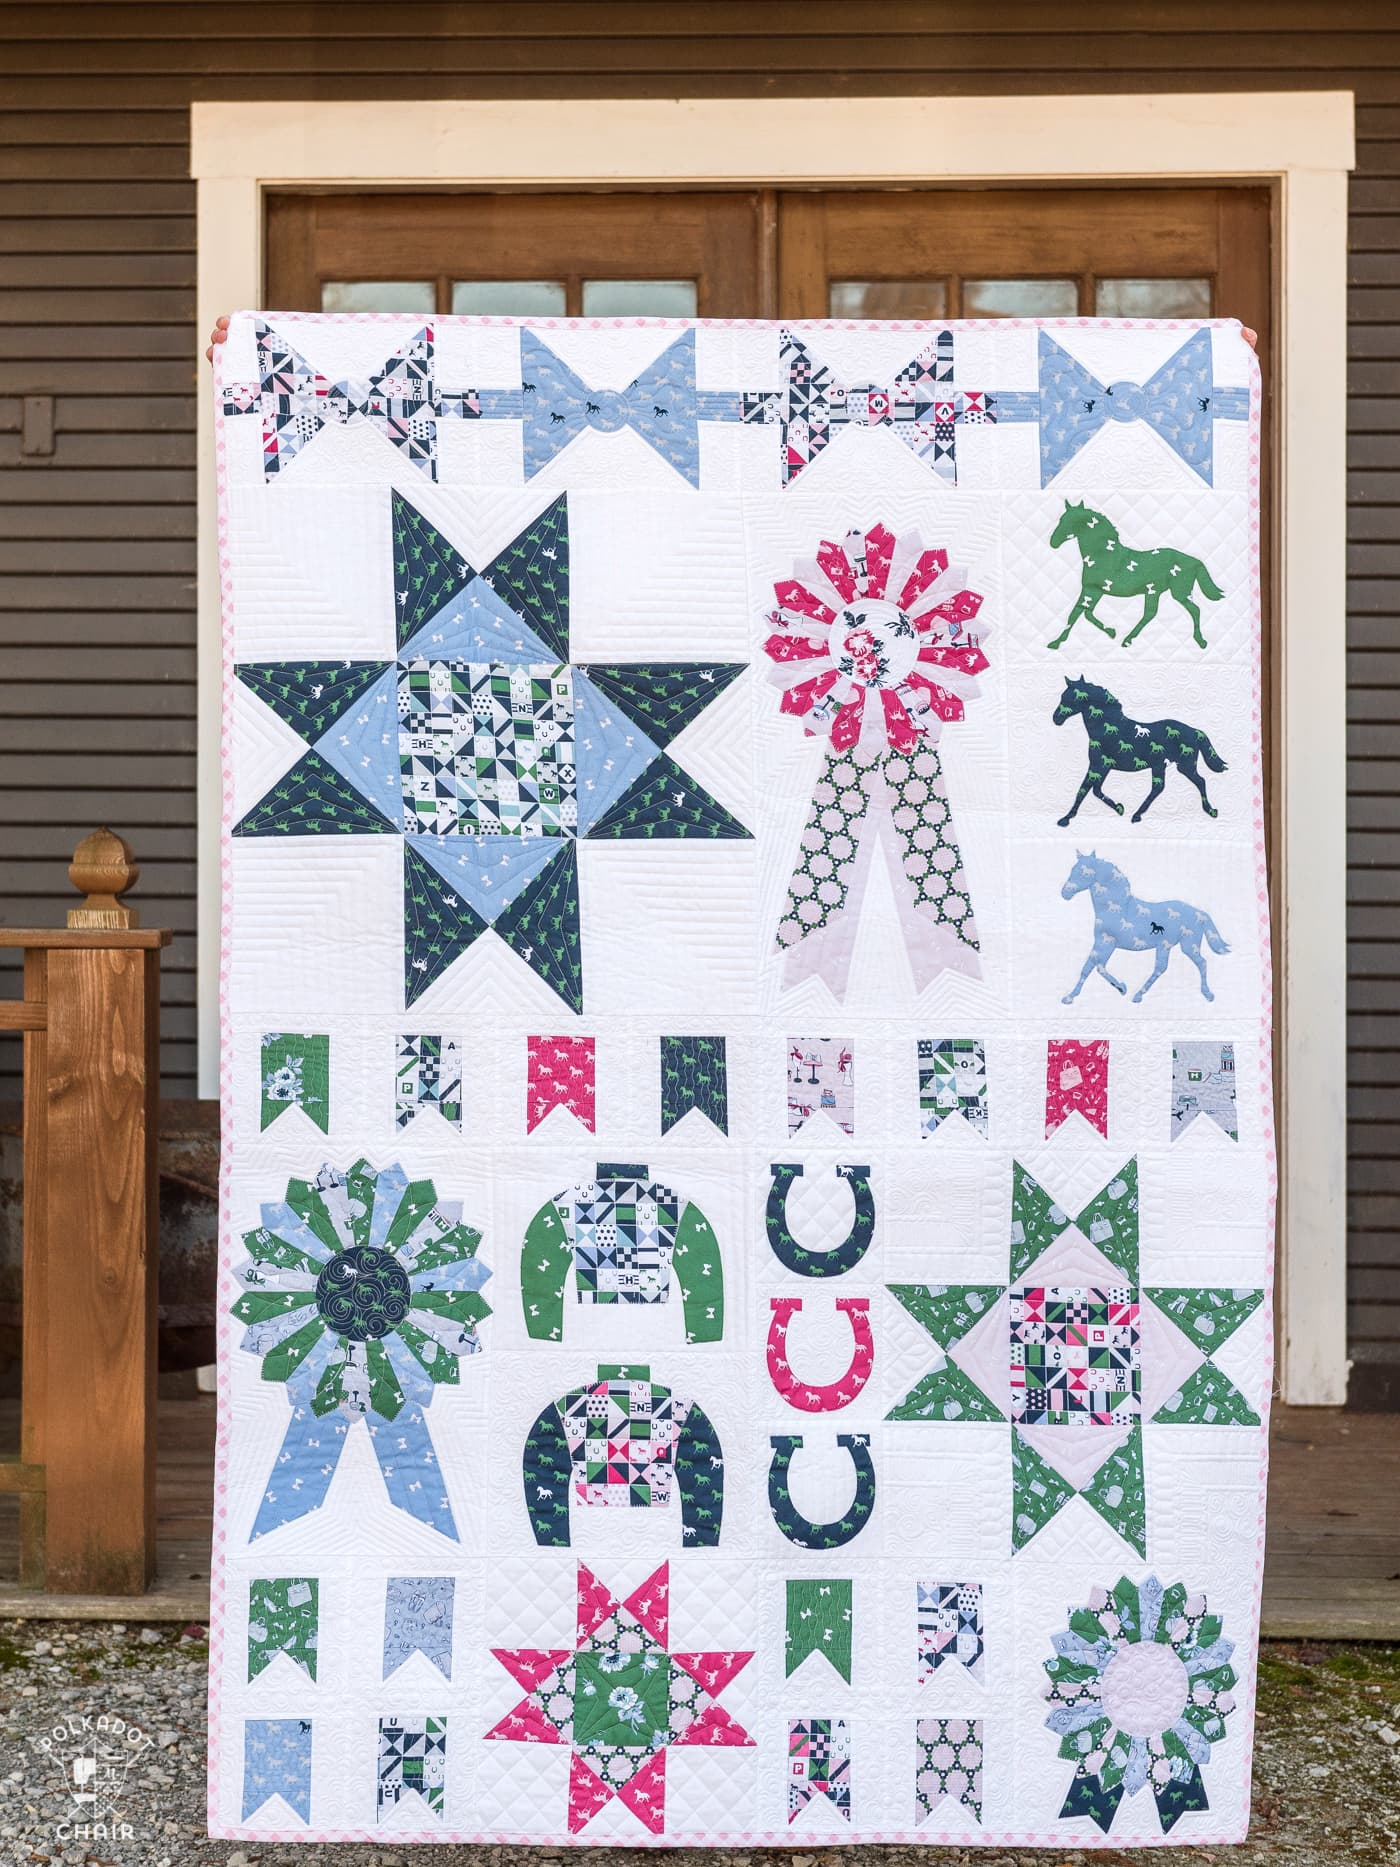 Derby Sampler quilt by melissa mortenson of polkadotchair.com - a fun horse and equestrian themed sampler quilt pattern using Derby Day Fabrics